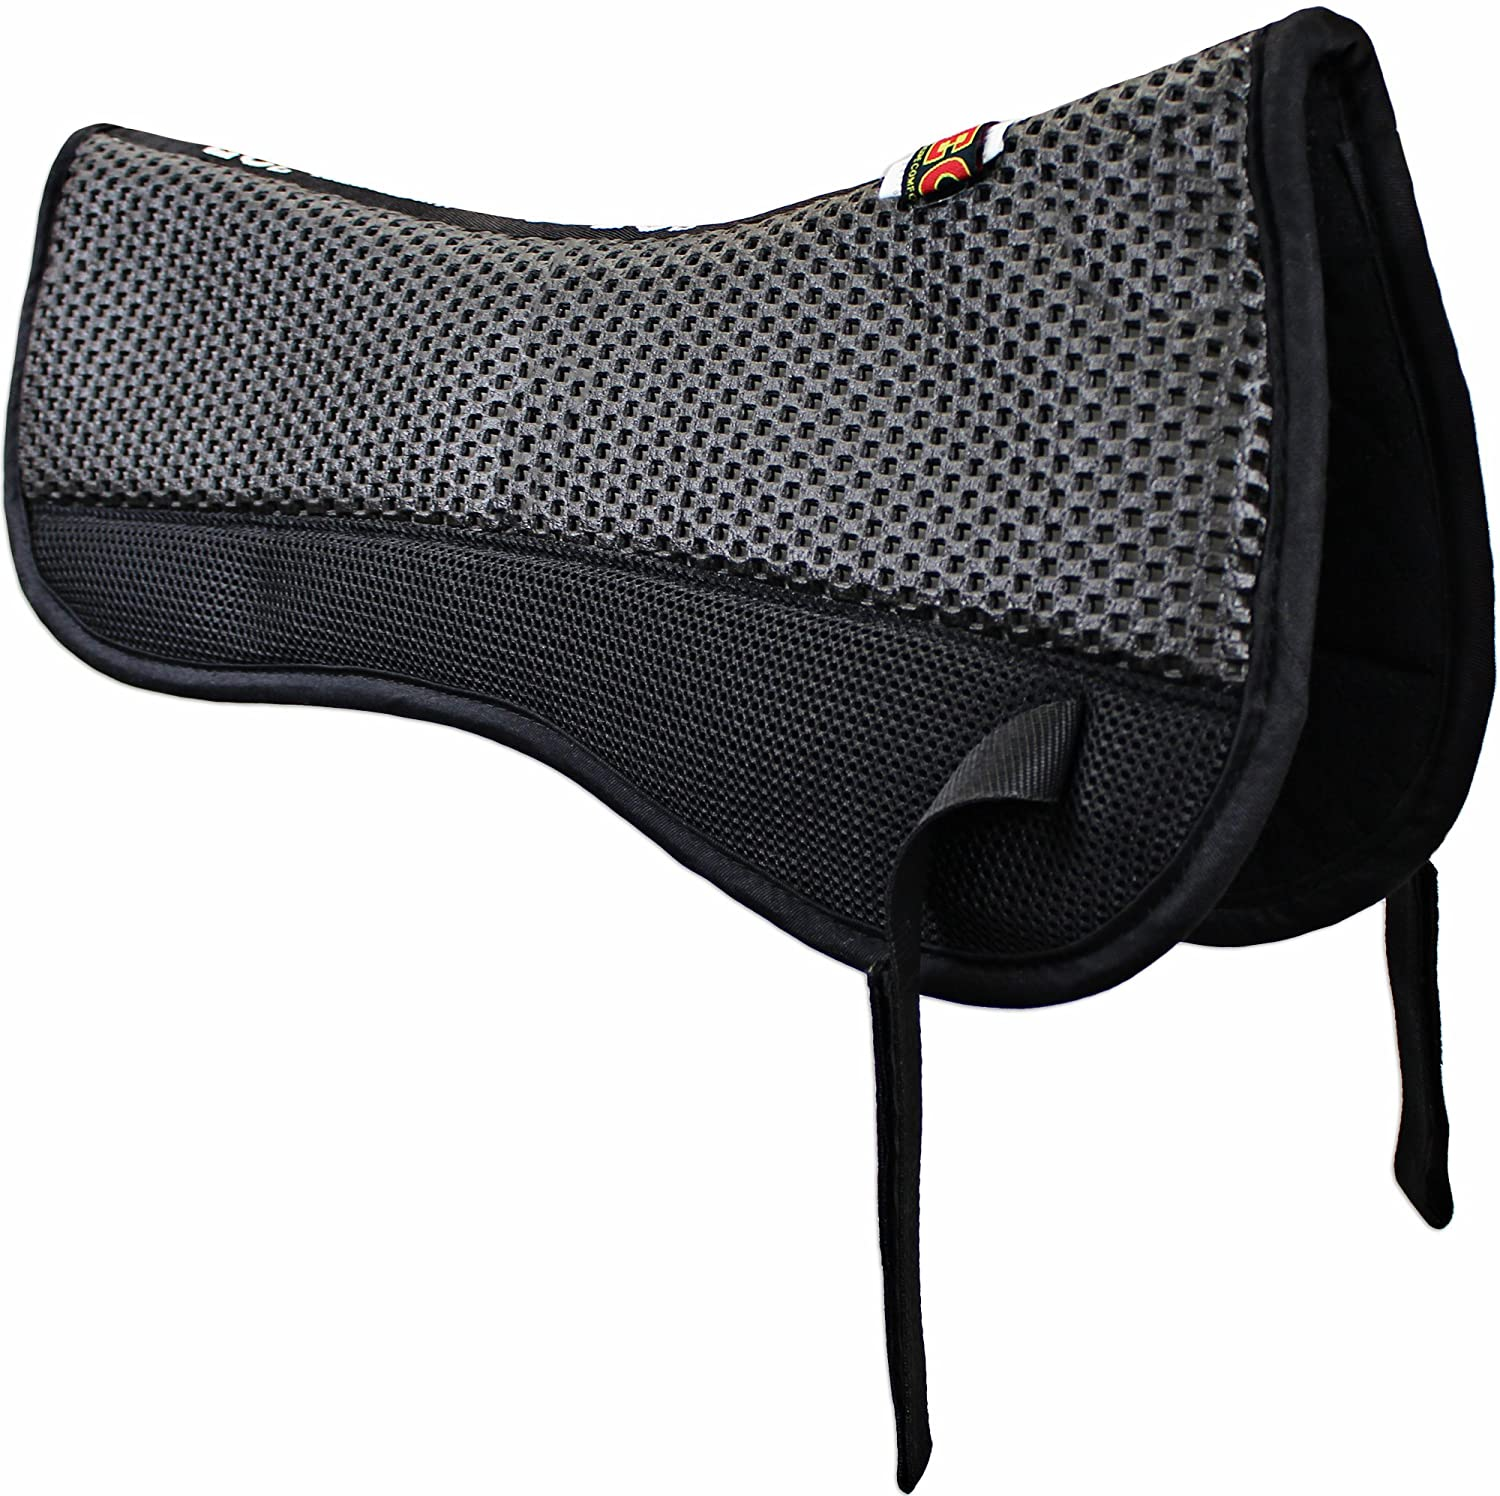 ECP All Purpose Grip Tech Half Saddle Pad Non Slip Top Brushed Cotton Bottom Compression Foam Breathable Shock Absorbing Moisture Wicking with Mesh Flaps